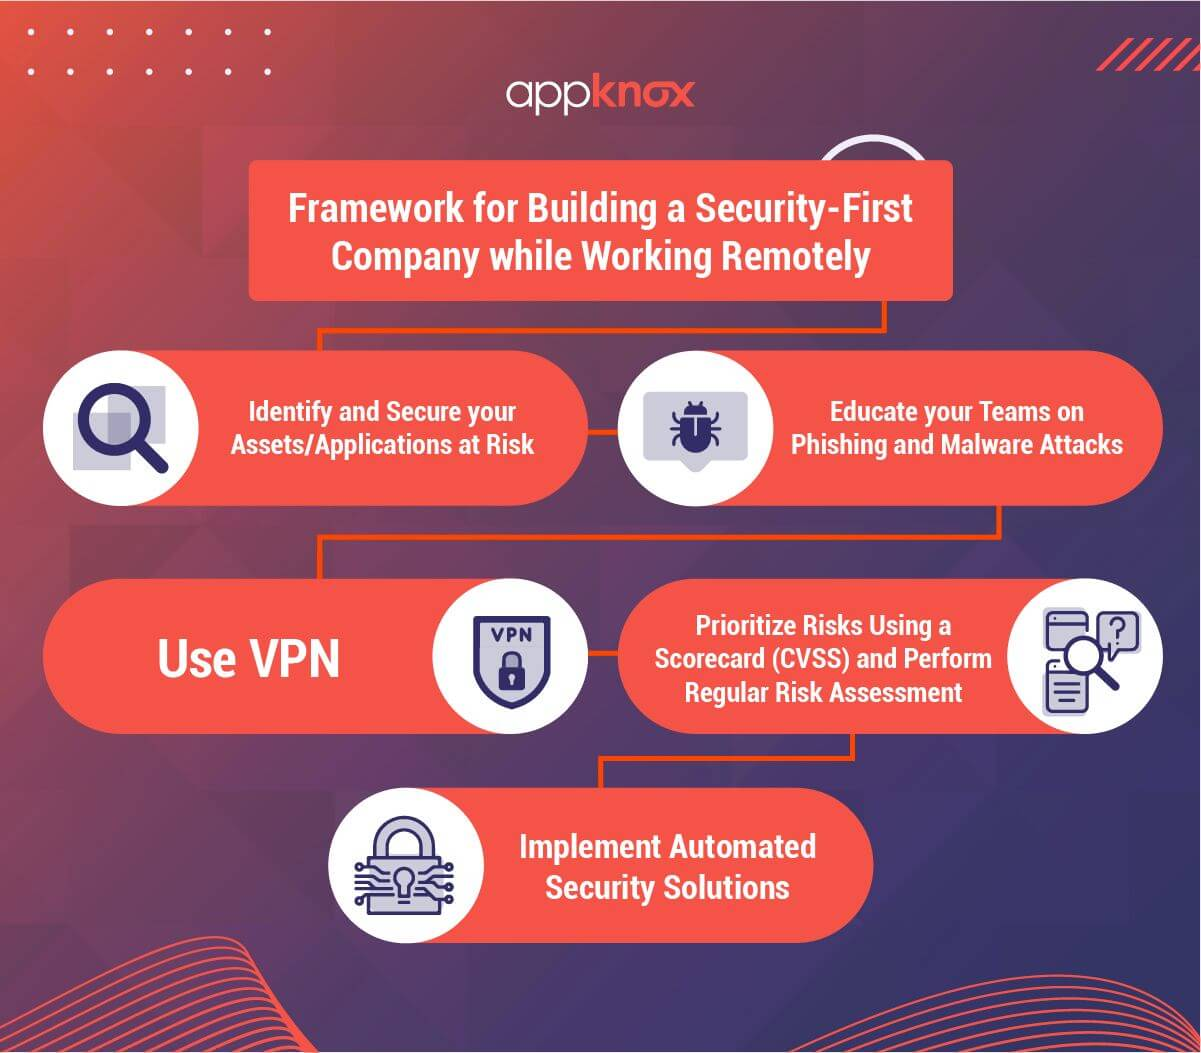 Framework for Building a Security-First Company while Working Remotely